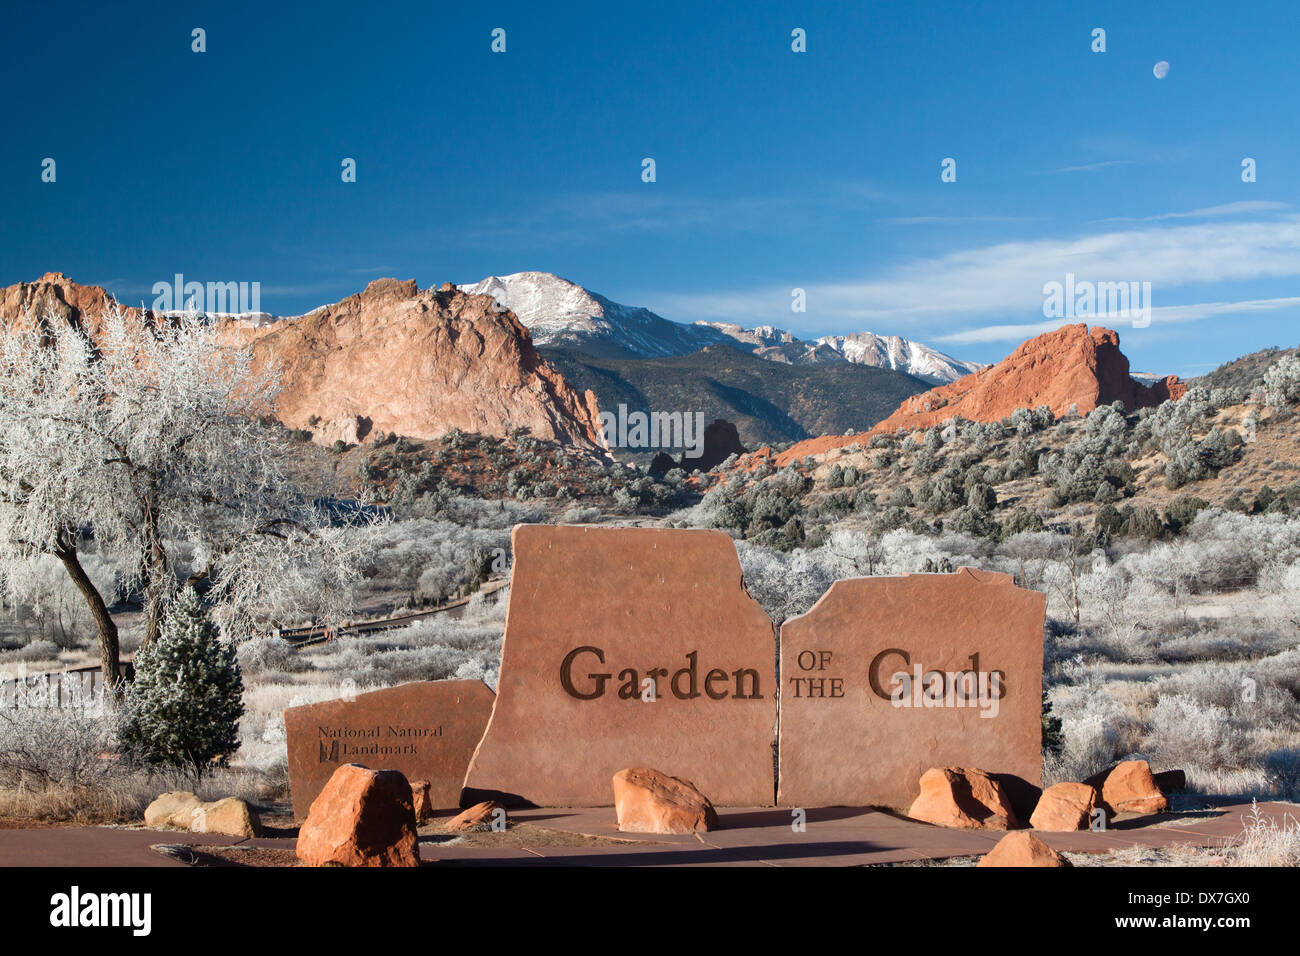 Entry sign at Garden of the Gods park, Colorado Springs, Colorado, USA on a frosty winter day. This is a public city park. - Stock Image